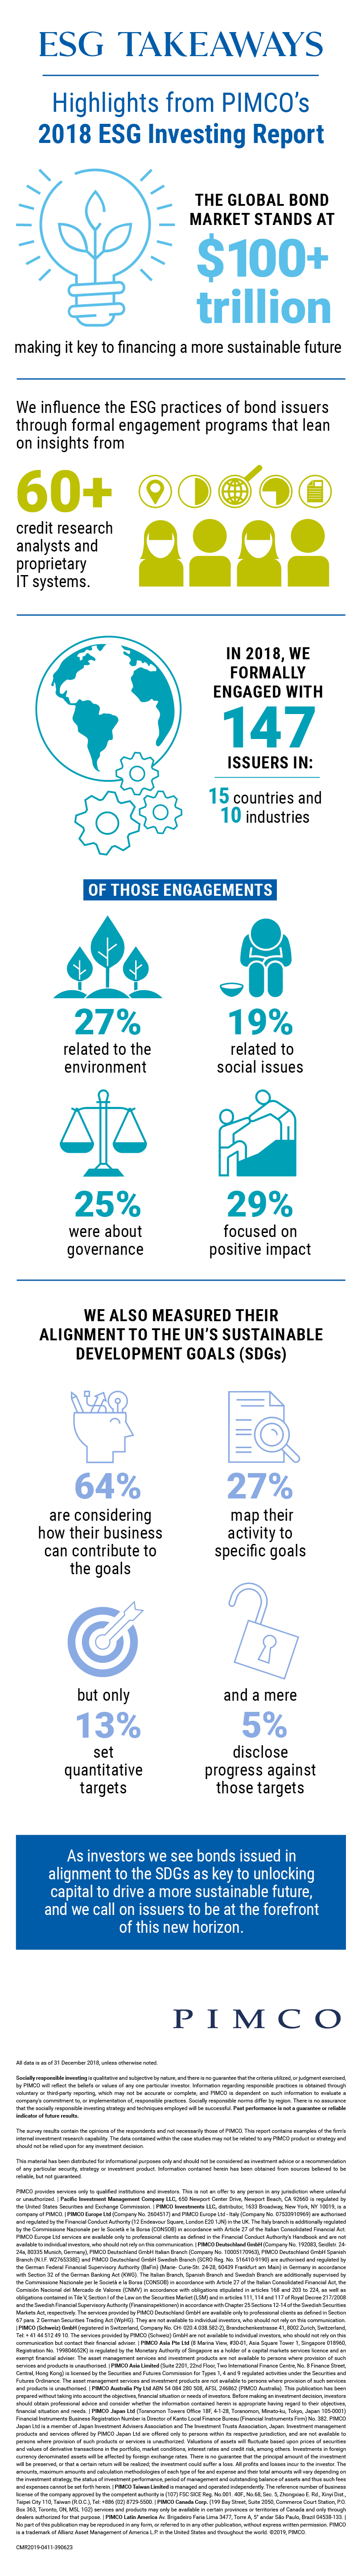 ESG Investing Report 2018 | Environmental, Social and Governance